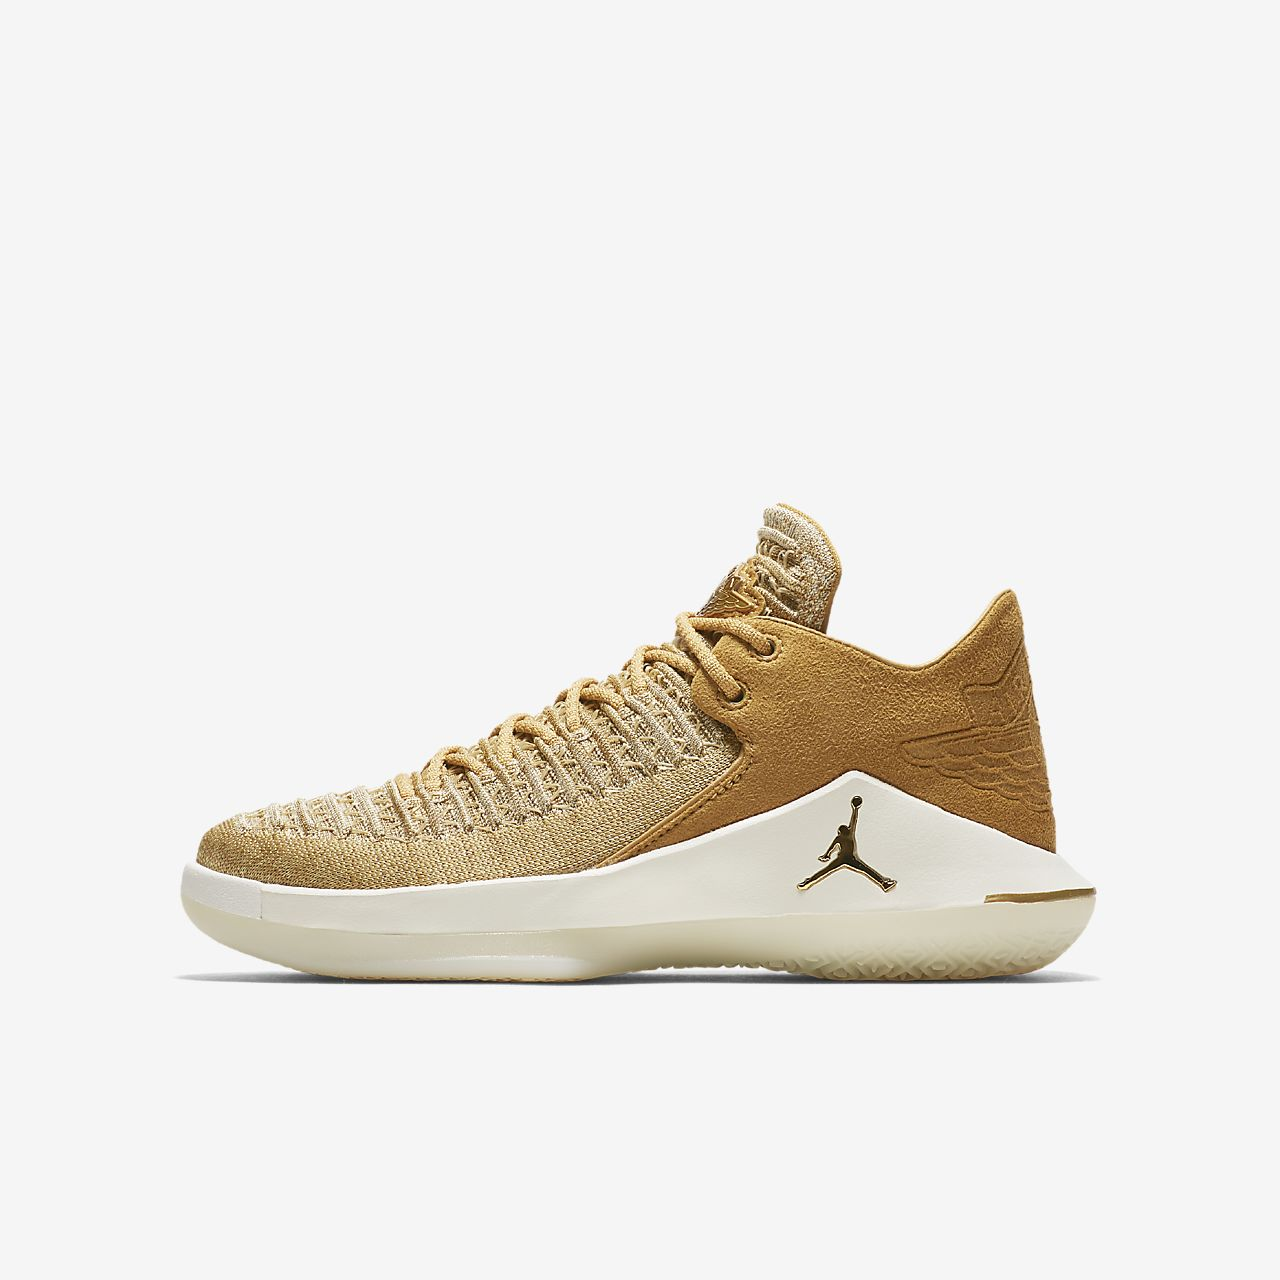 Air Jordan XXXII Low 大童籃球鞋